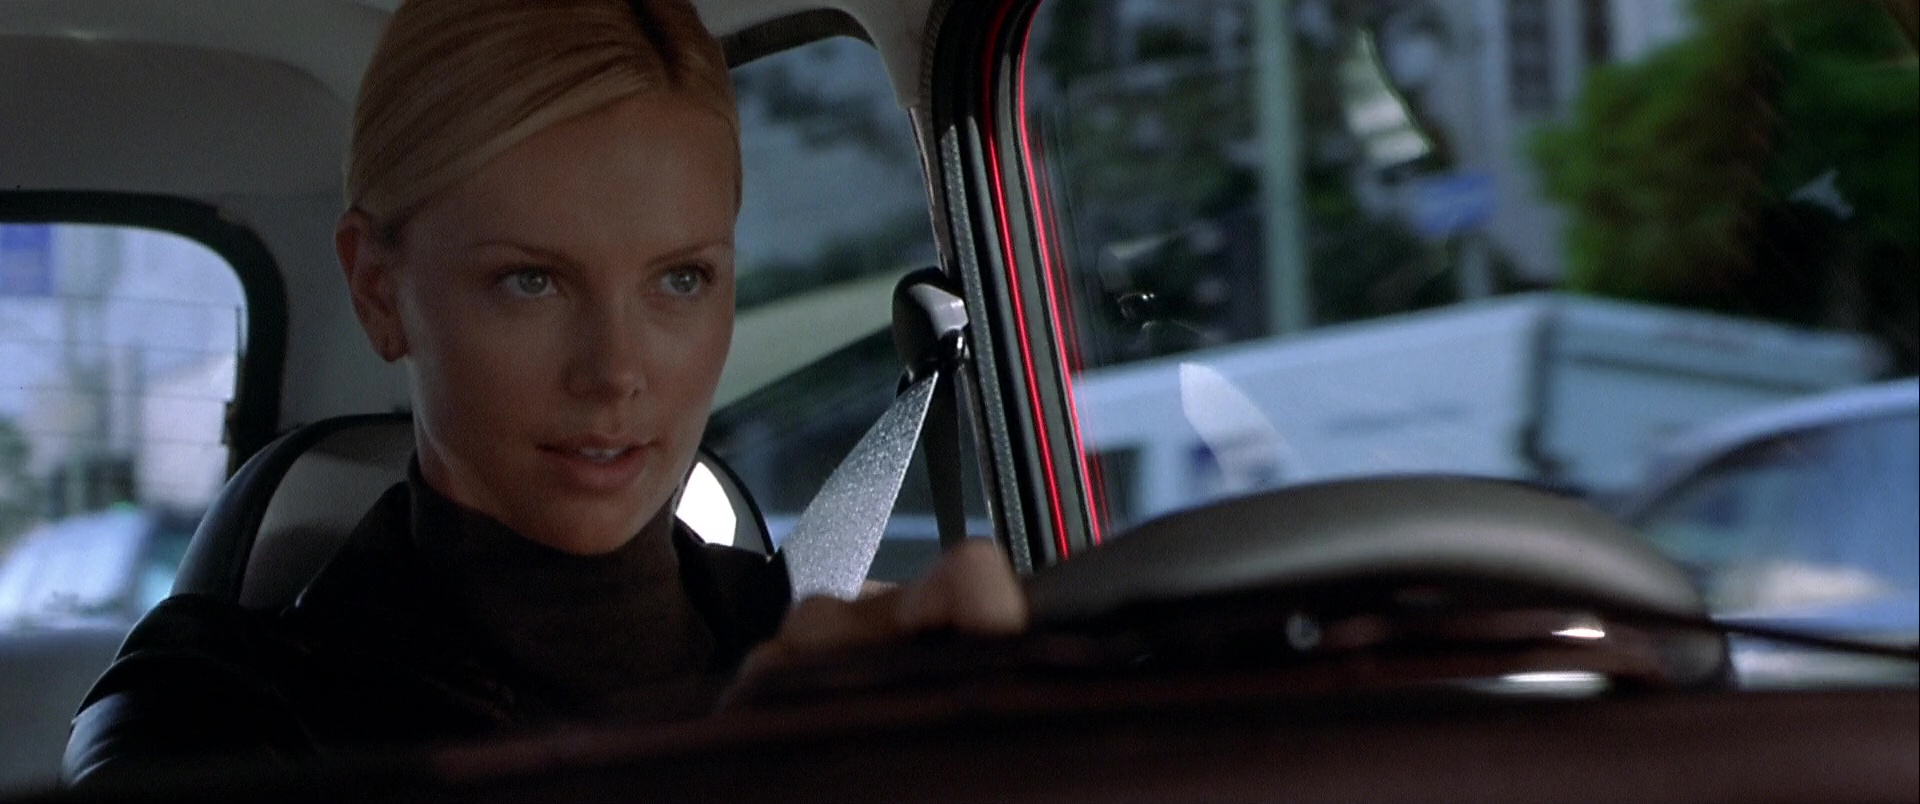 Used Mini Cooper Convertible >> Rover Mini Cooper MkVII Used by Charlize Theron in The Italian Job (2003) Movie